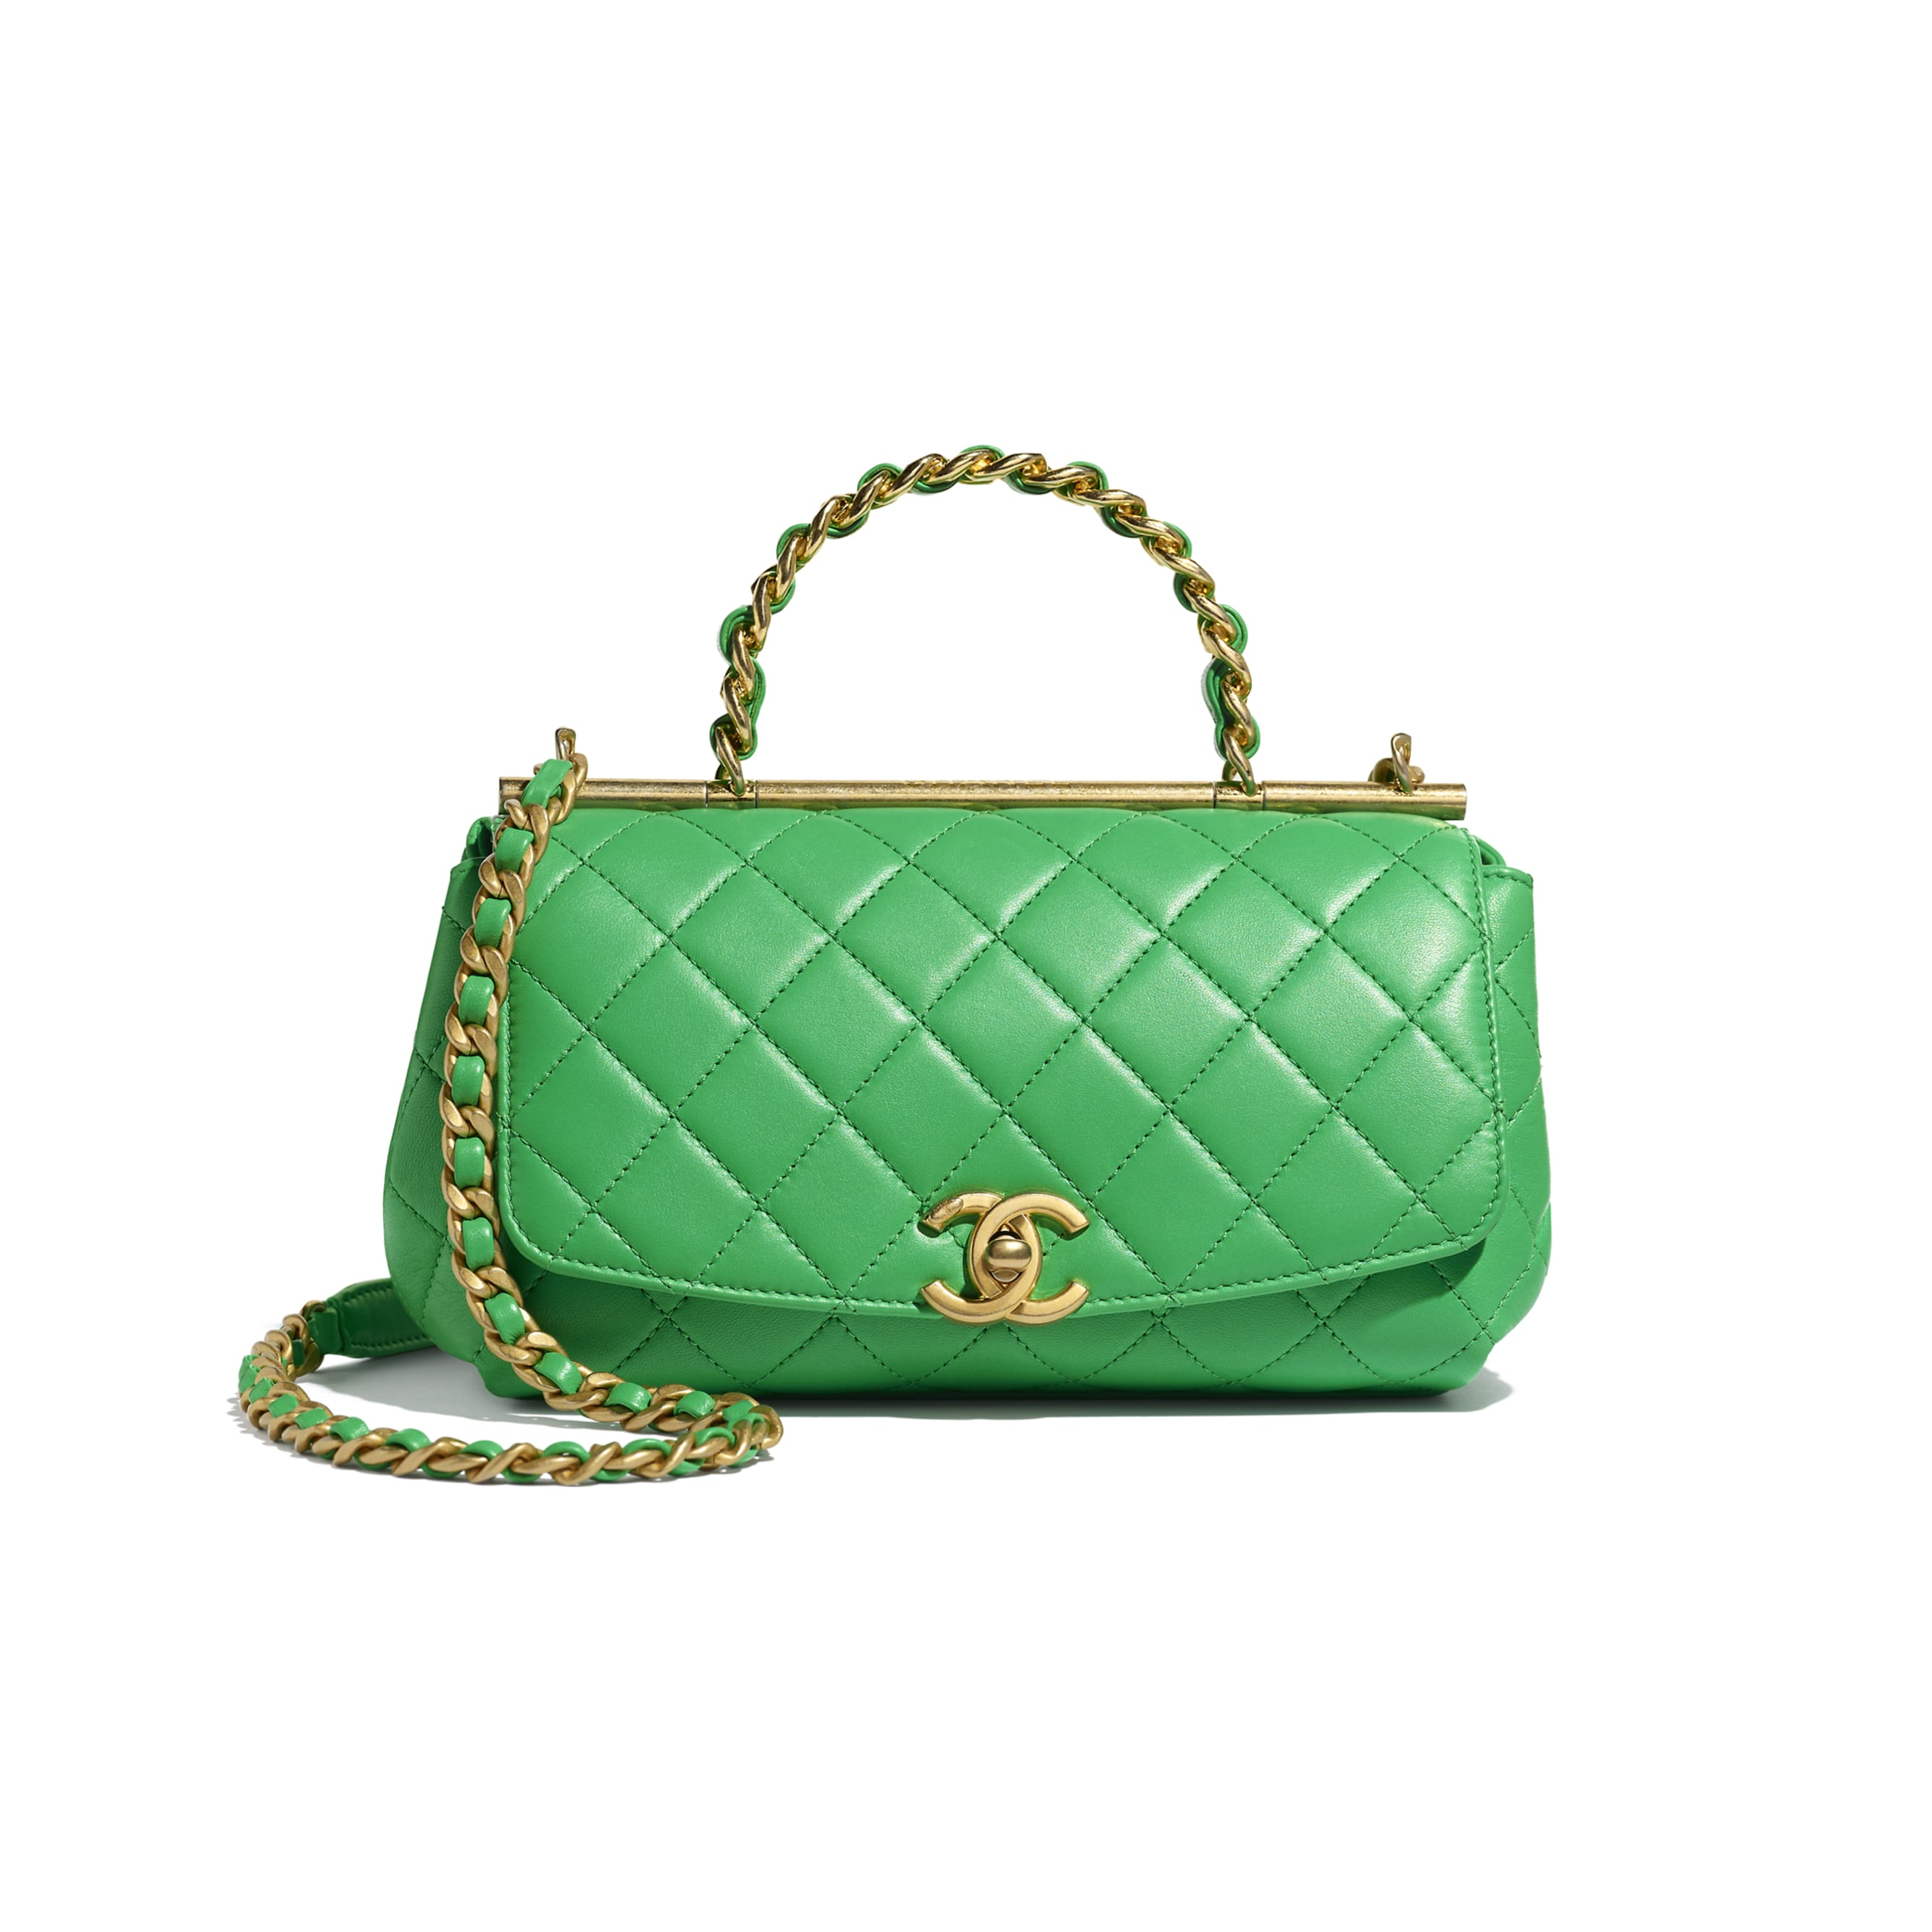 Small Flap Bag With Top Handle - Green - Lambskin - Default view - see standard sized version